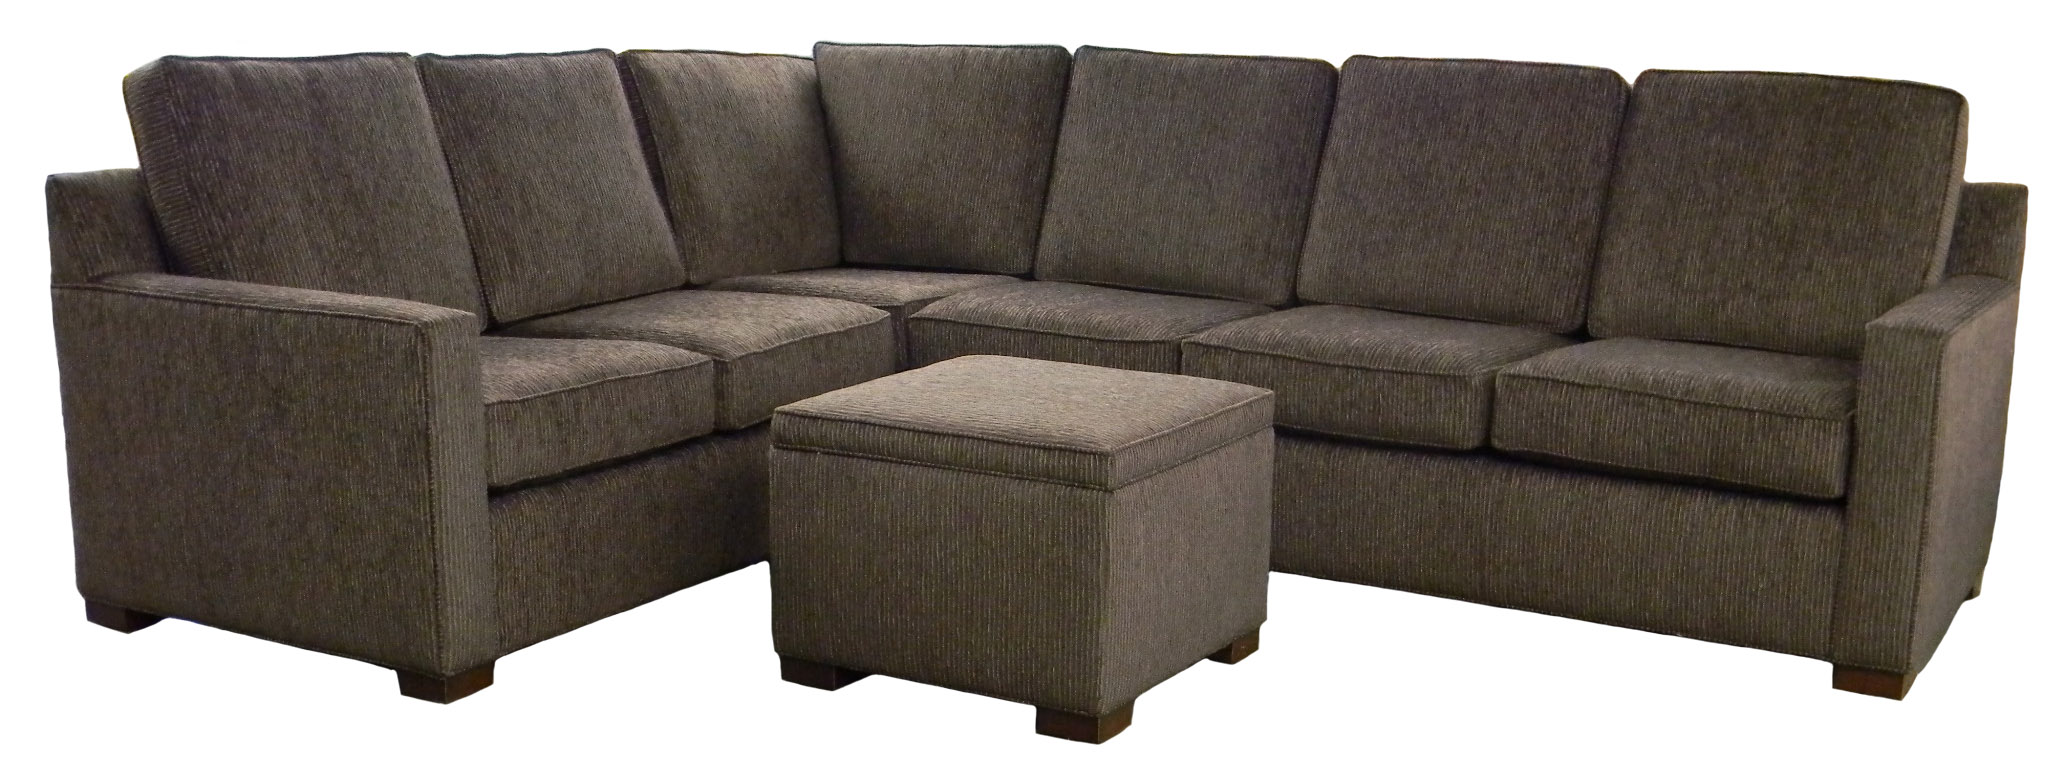 Photos Examples Custom Sectional Sofas Carolina Chair furniture